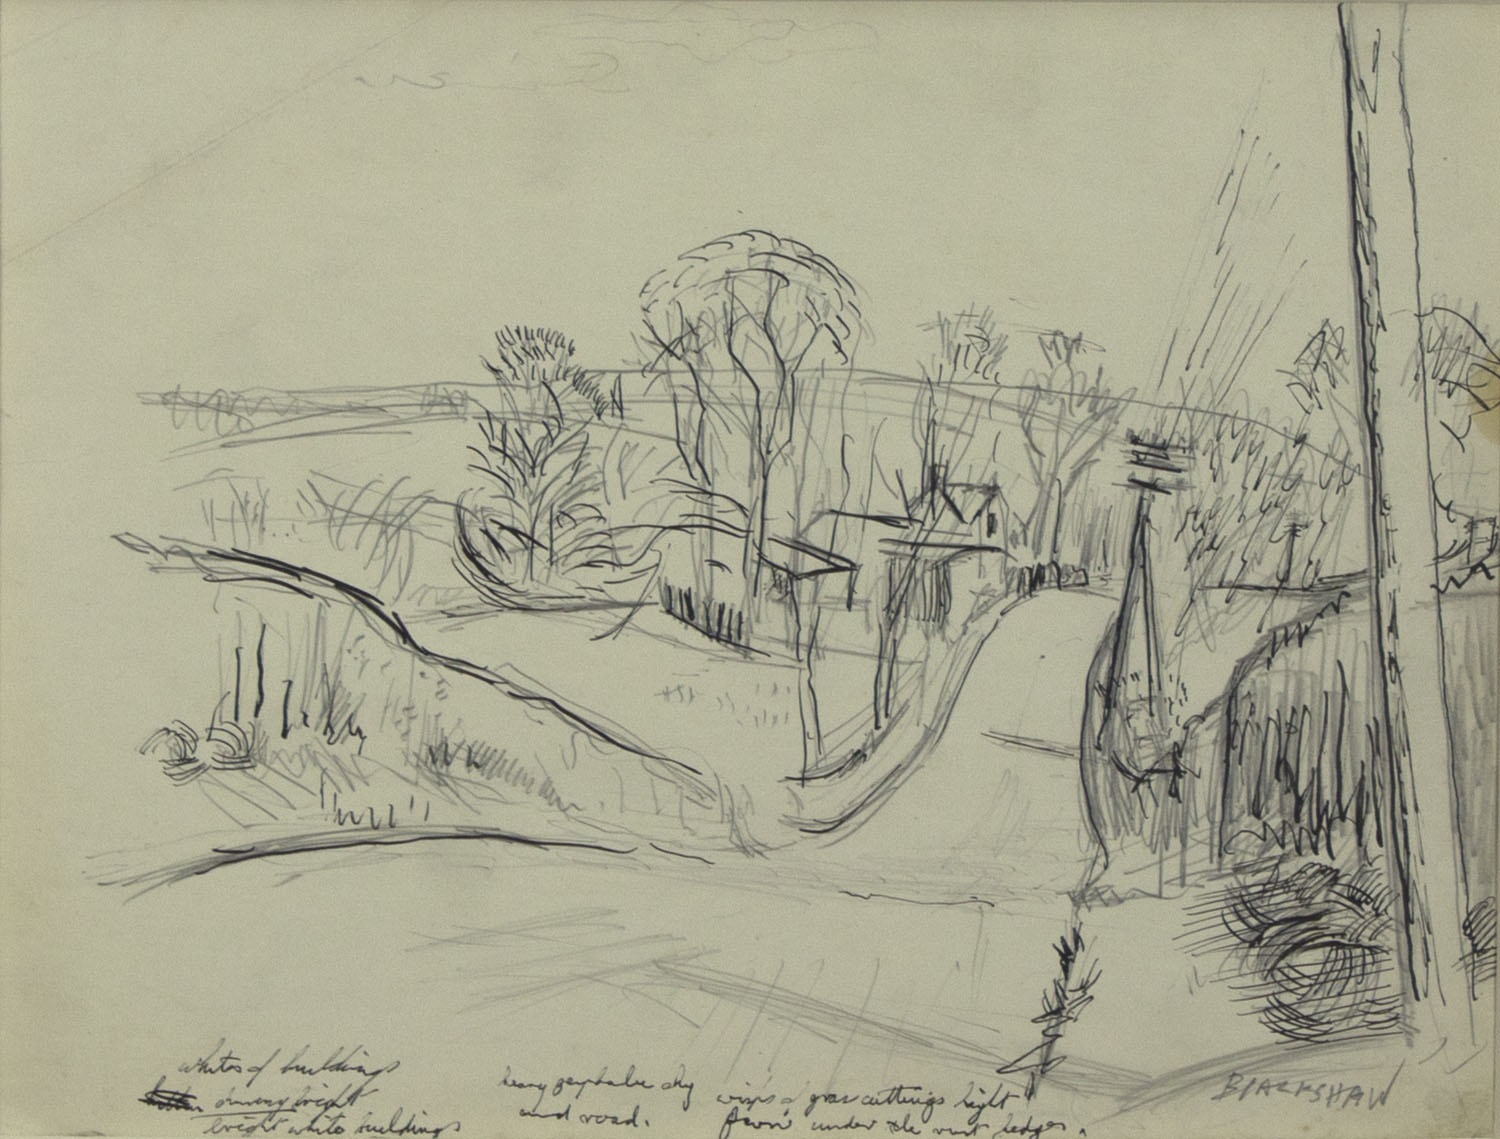 Tony O'Malley 'Old Walls Co Wexford' c.1950 pen and ink 15x20cm.jpg